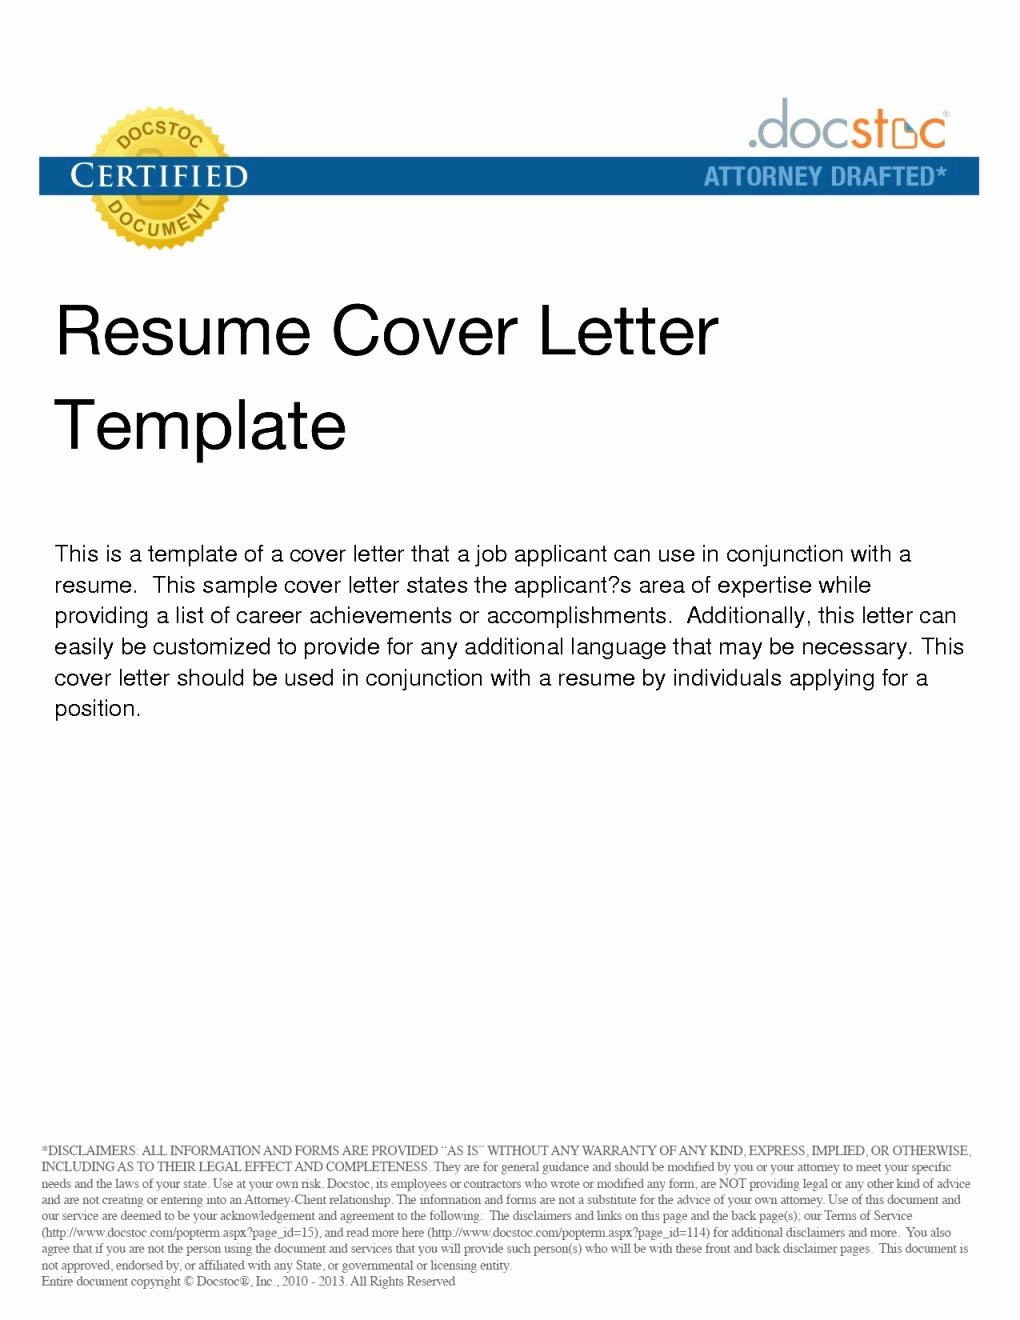 Resume Cover Letter Template Free Lovely Simple Email Cover Letter for Resume Awesome Cover Letter